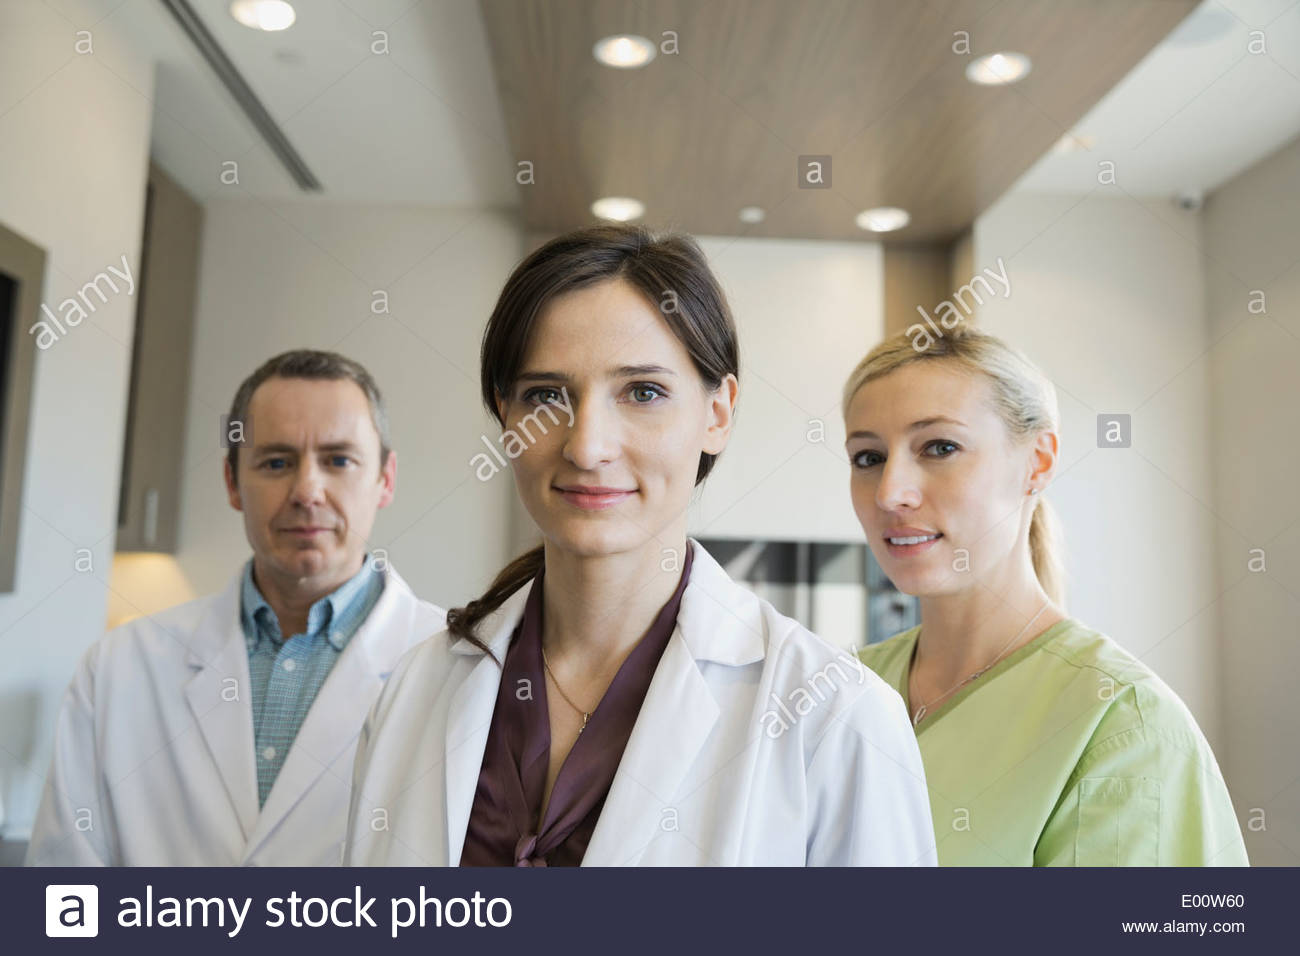 Portrait of confident dentists and assistant - Stock Image